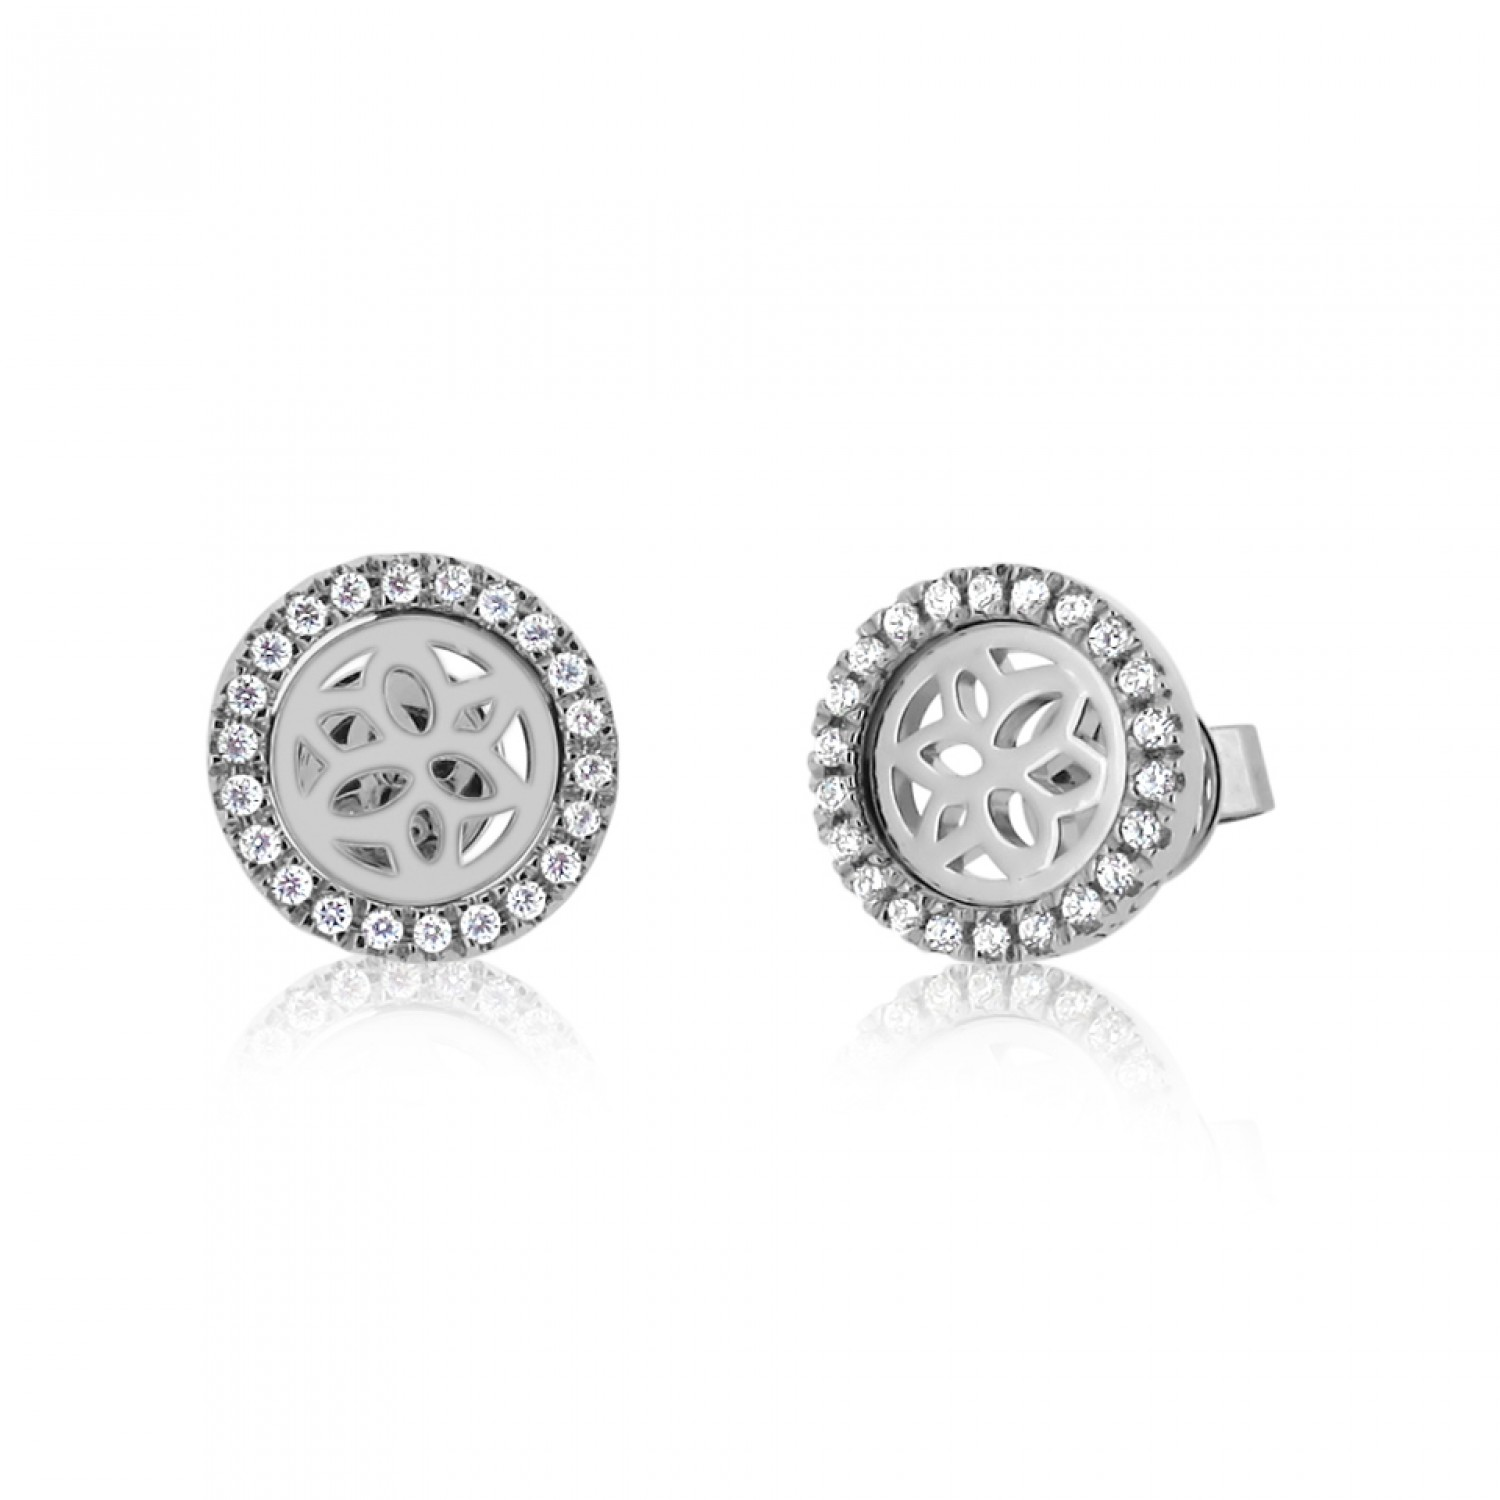 Jardin Magnolia Motif Silver Earrings